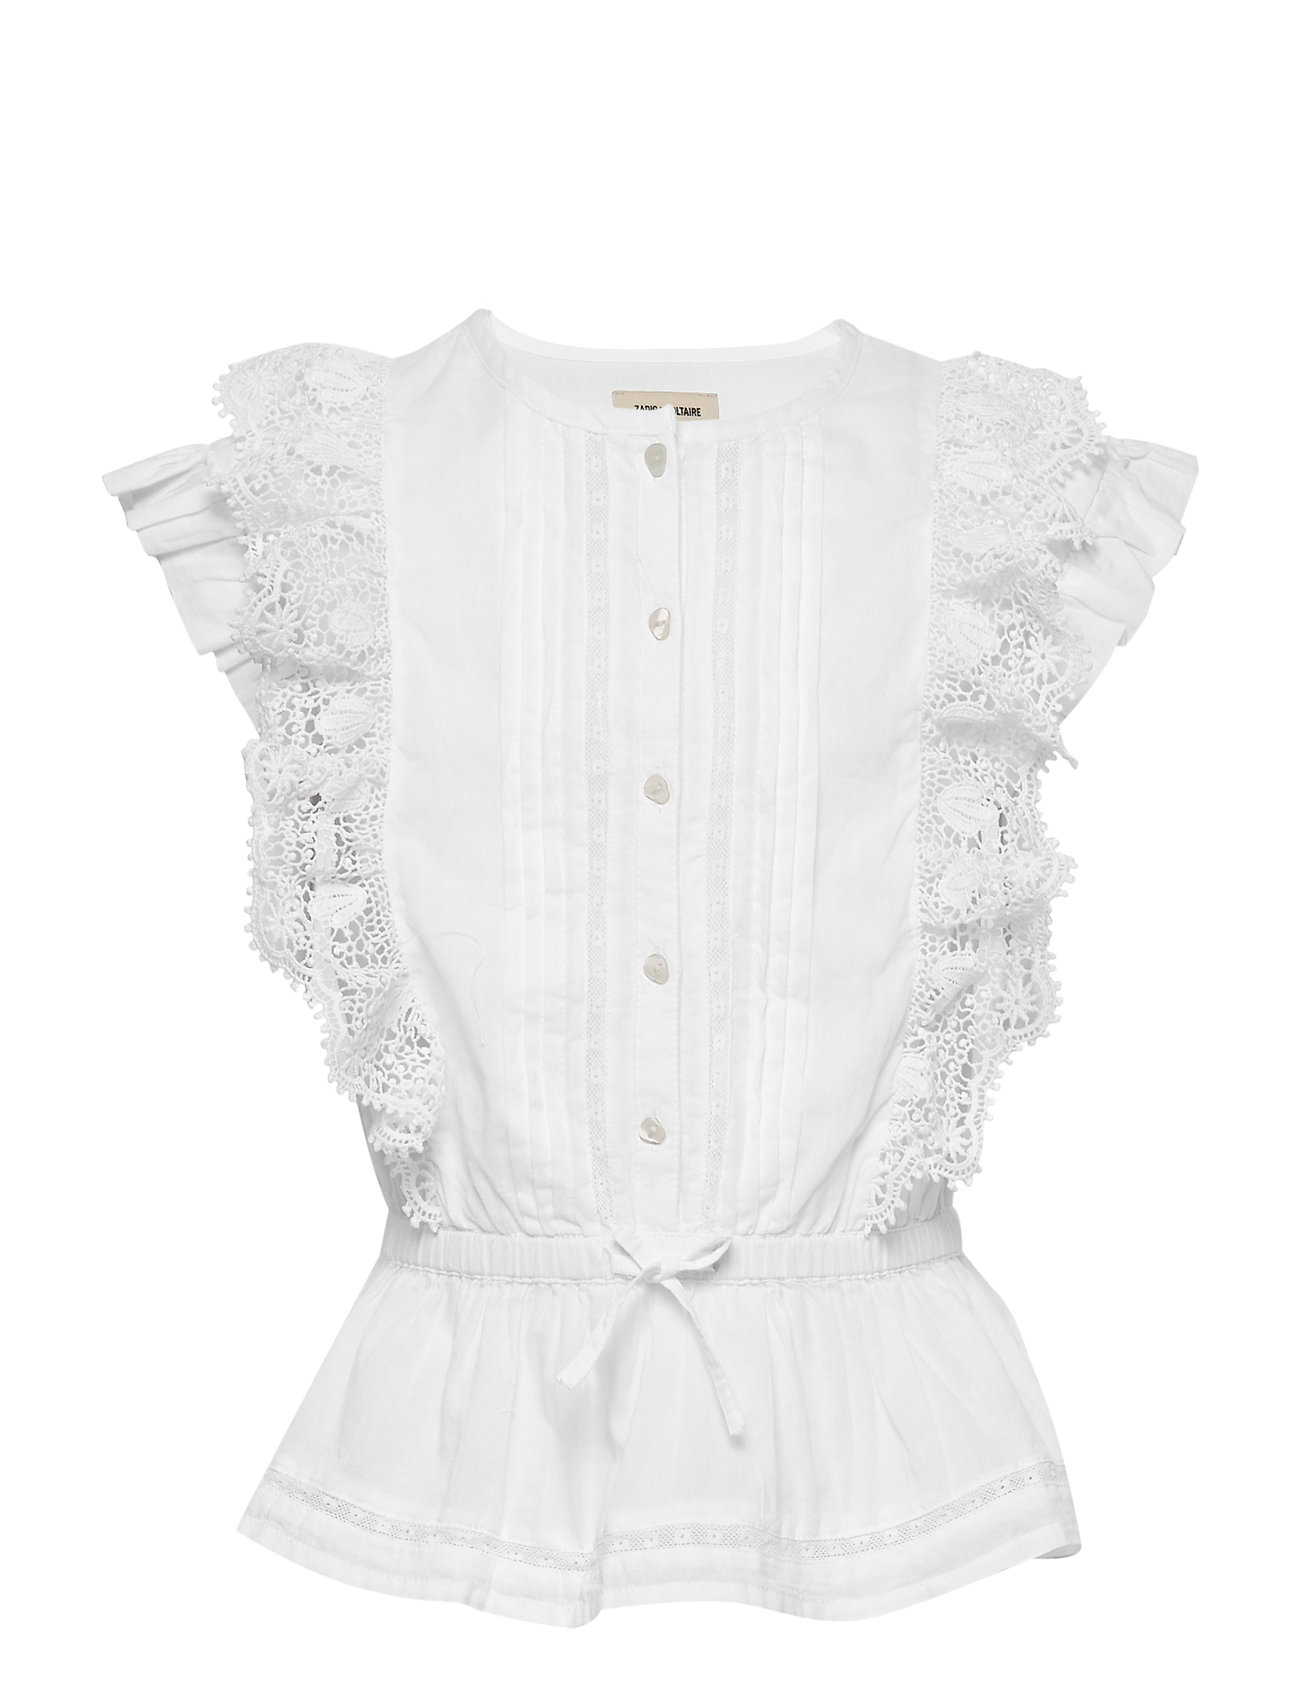 Zadig & Voltaire Kids BLOUSE - WHITE